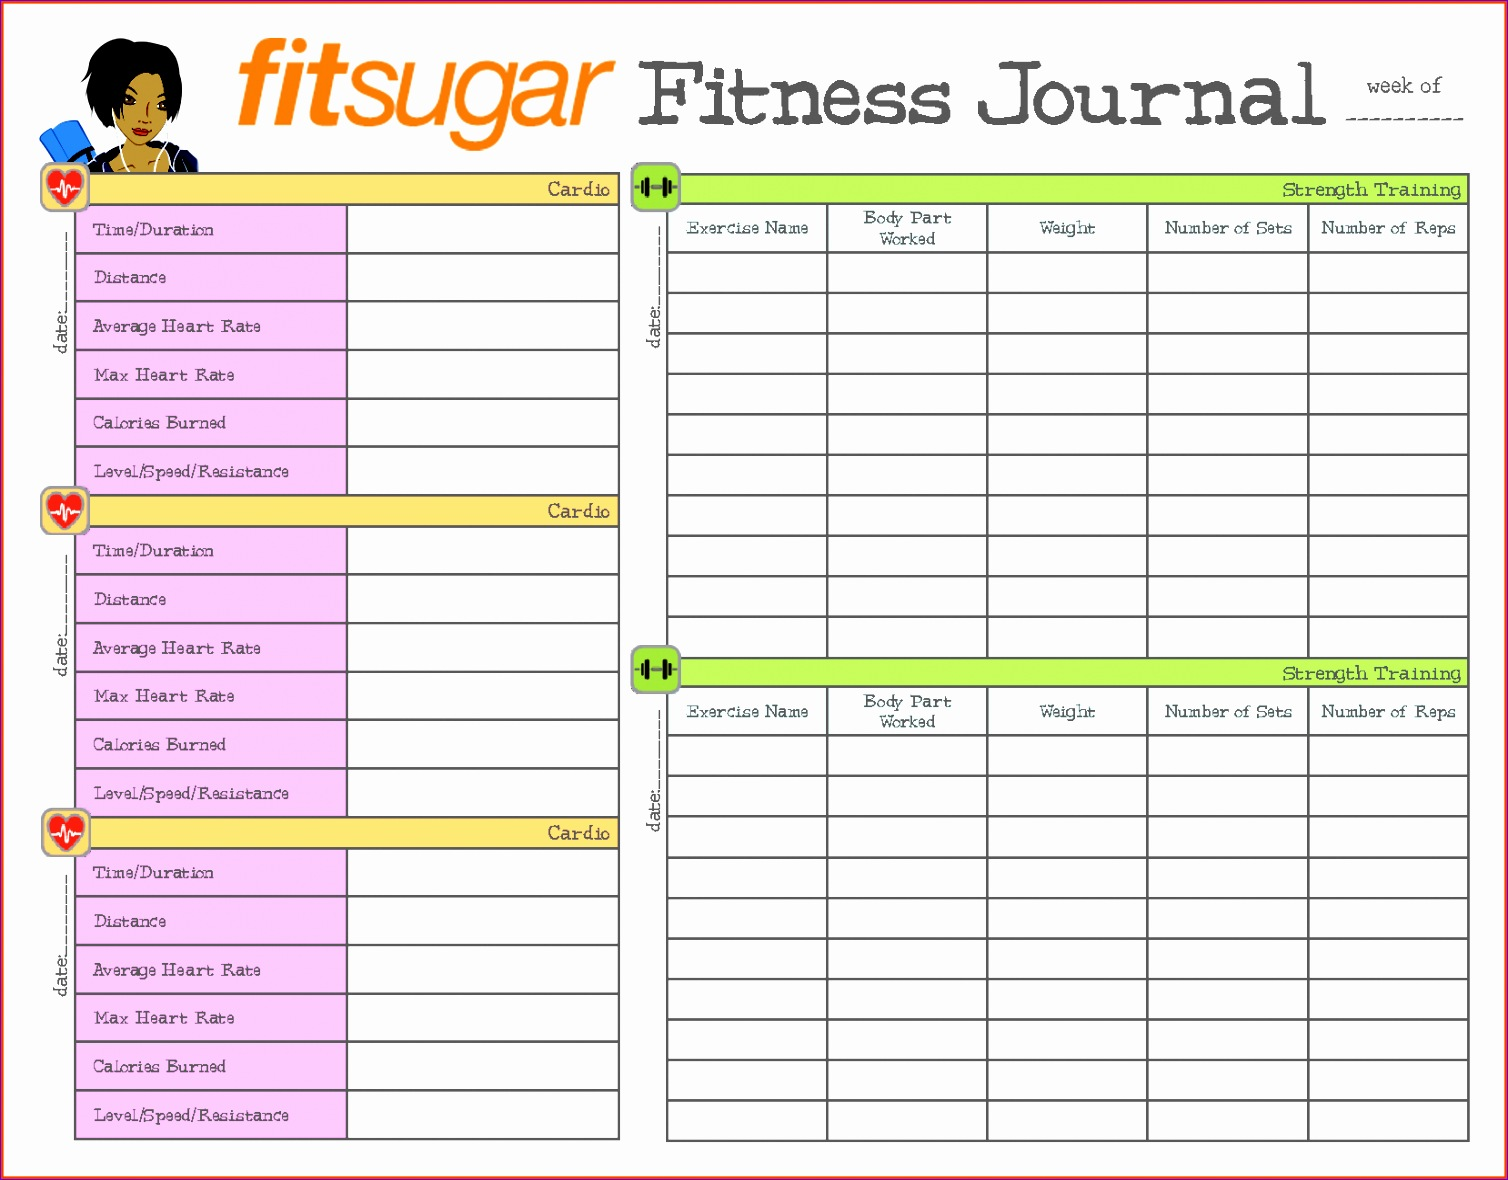 Workout log excel template vuald unique diet sheet template workout log excel template vuald unique diet sheet template 16581283 alramifo Images